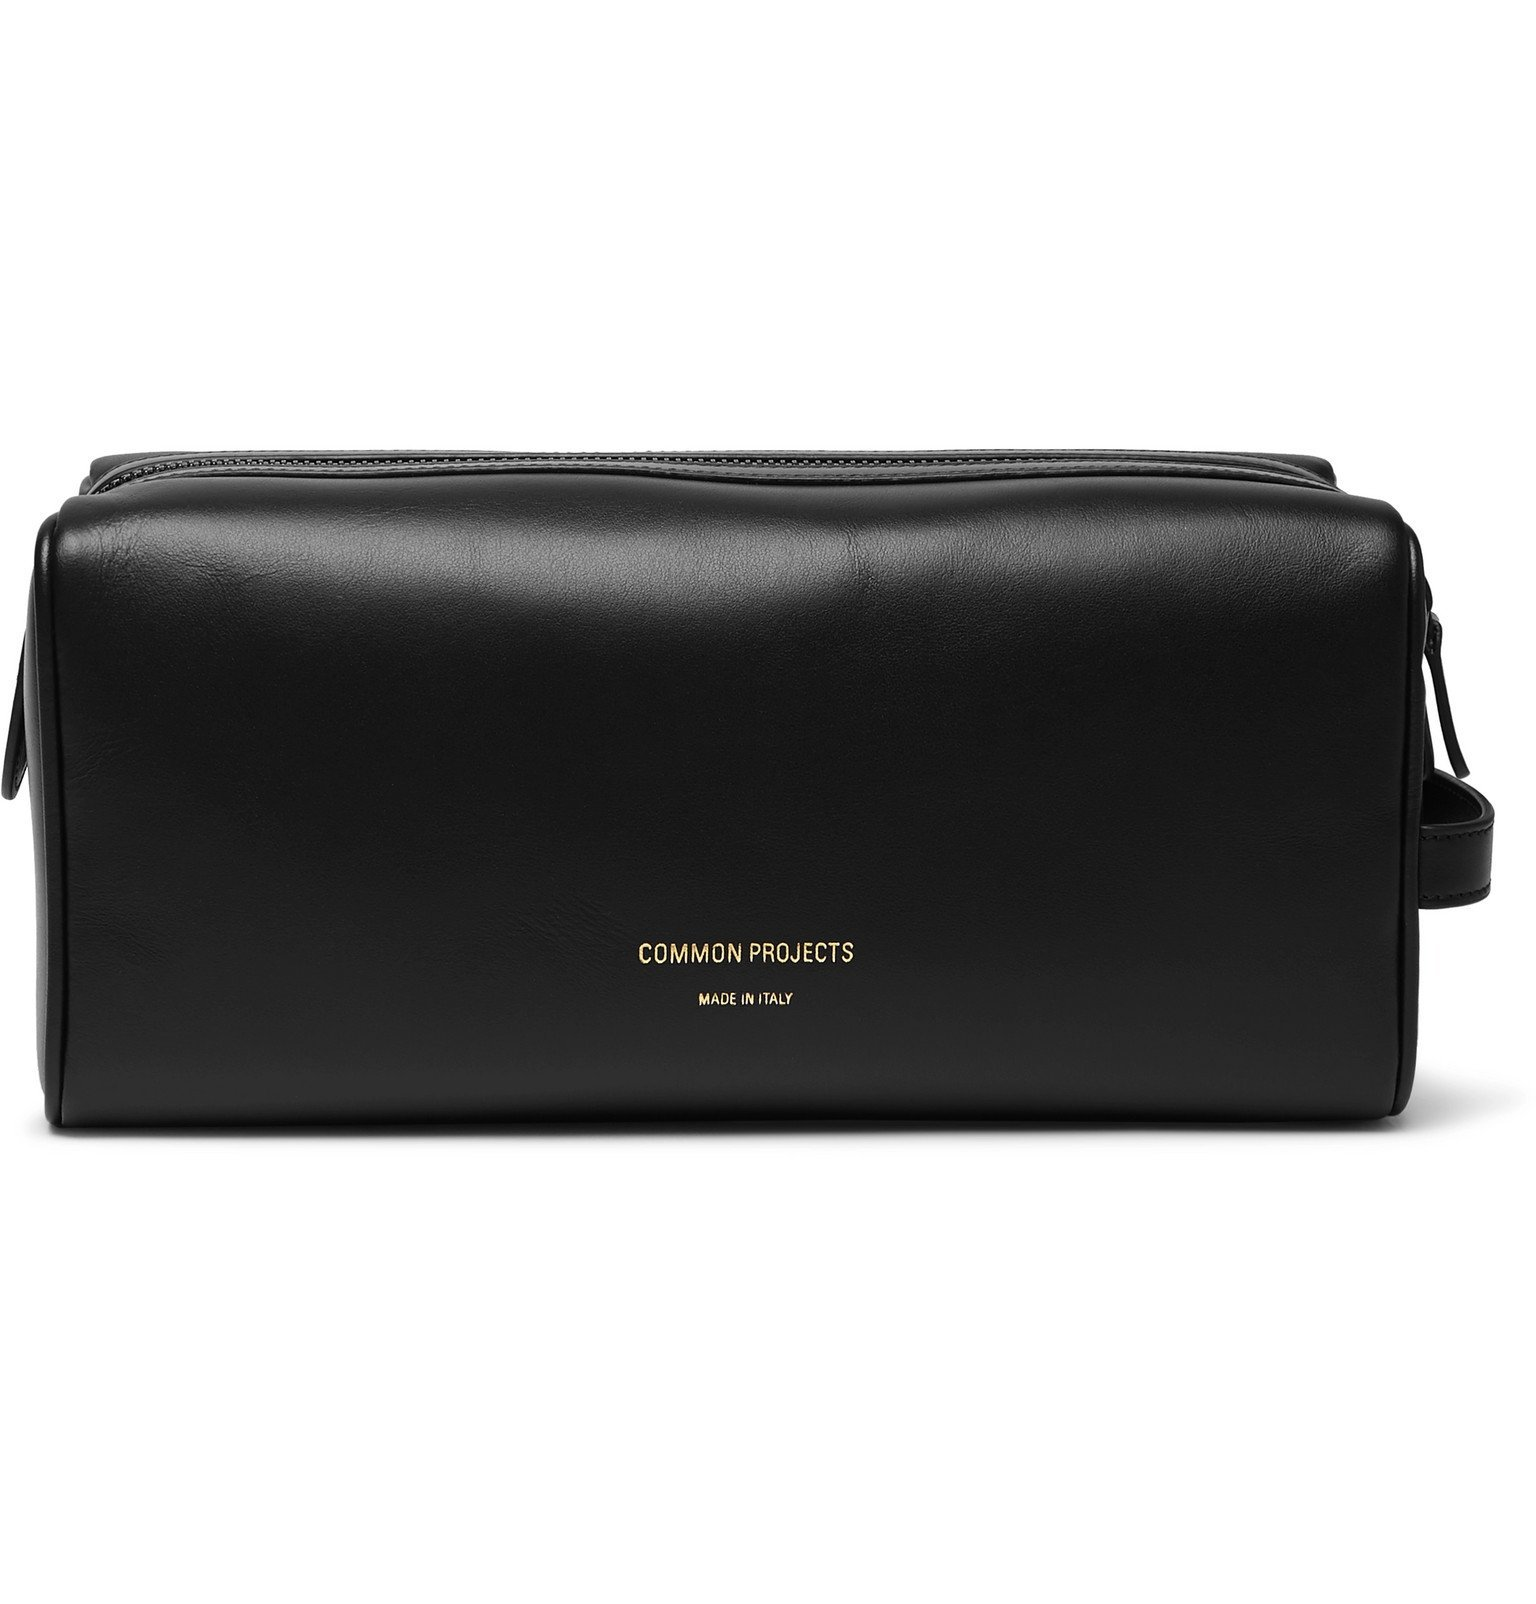 Common Projects - Leather Wash Bag - Black